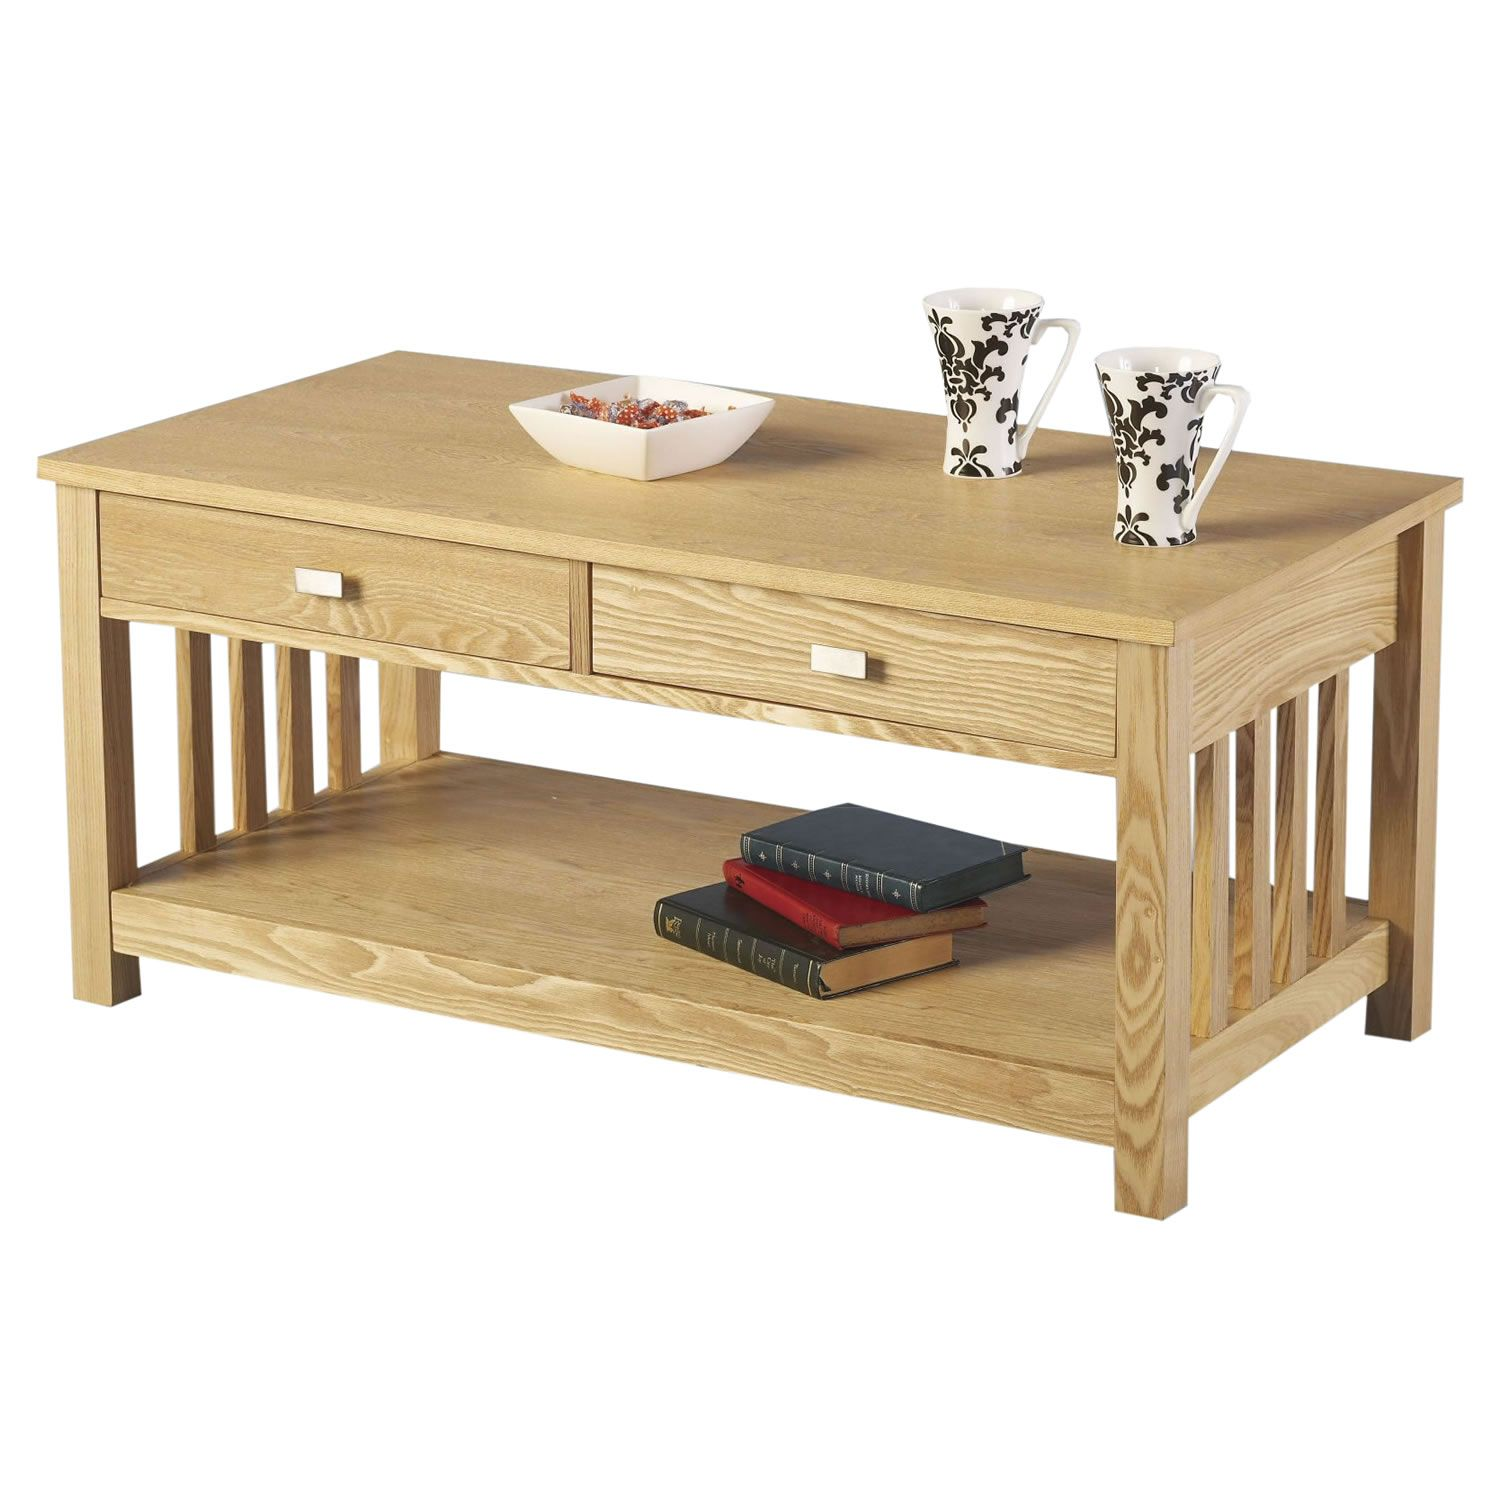 Arts Crafts Coffee Table With Drawers Coffee Table With Drawers Furniture Coffee Table